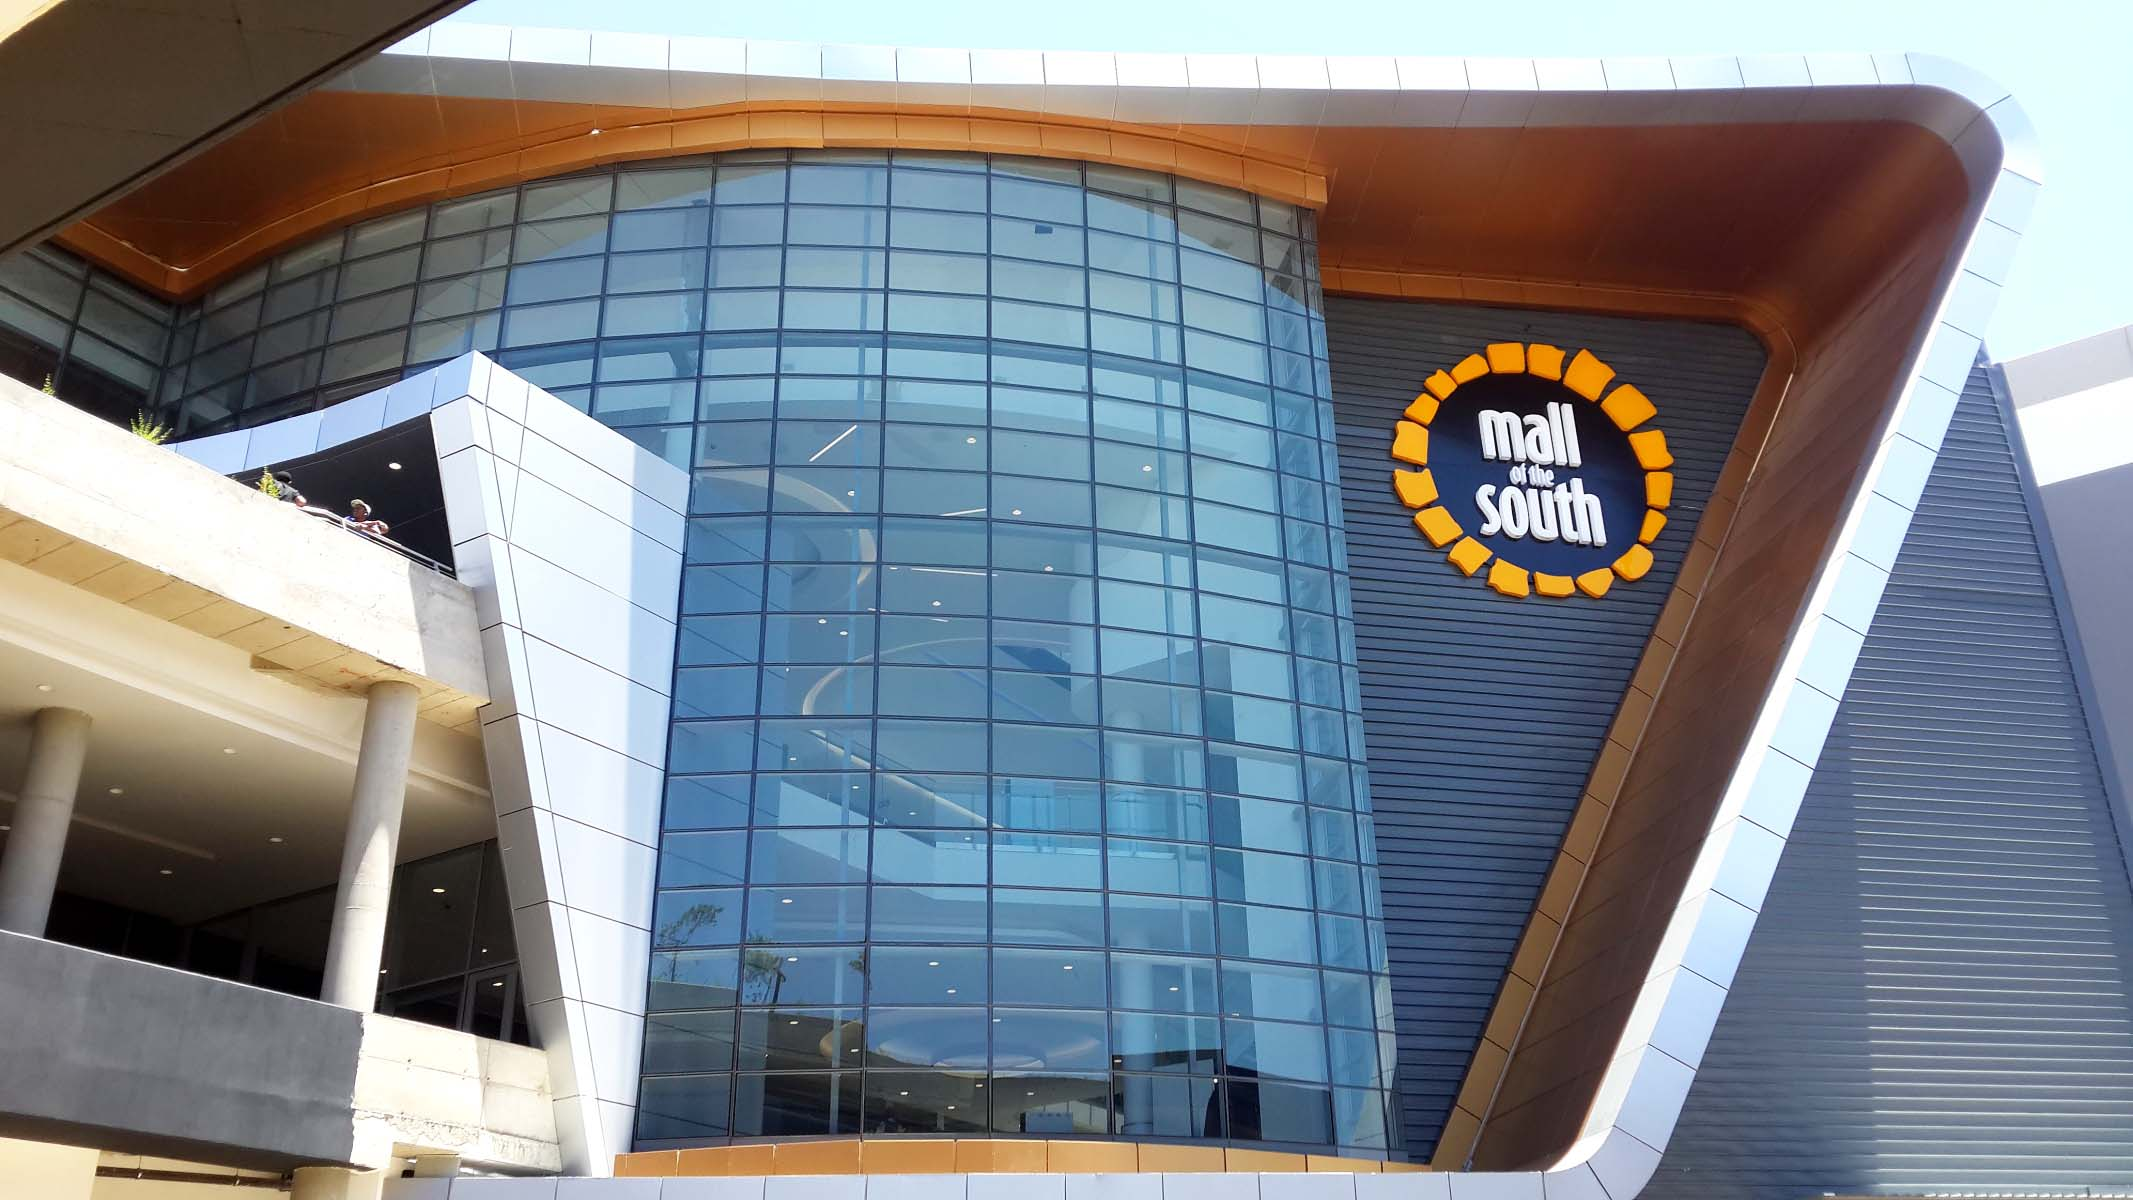 SE Controls keeps shoppers safe at Johannesburg's new Mall of the South